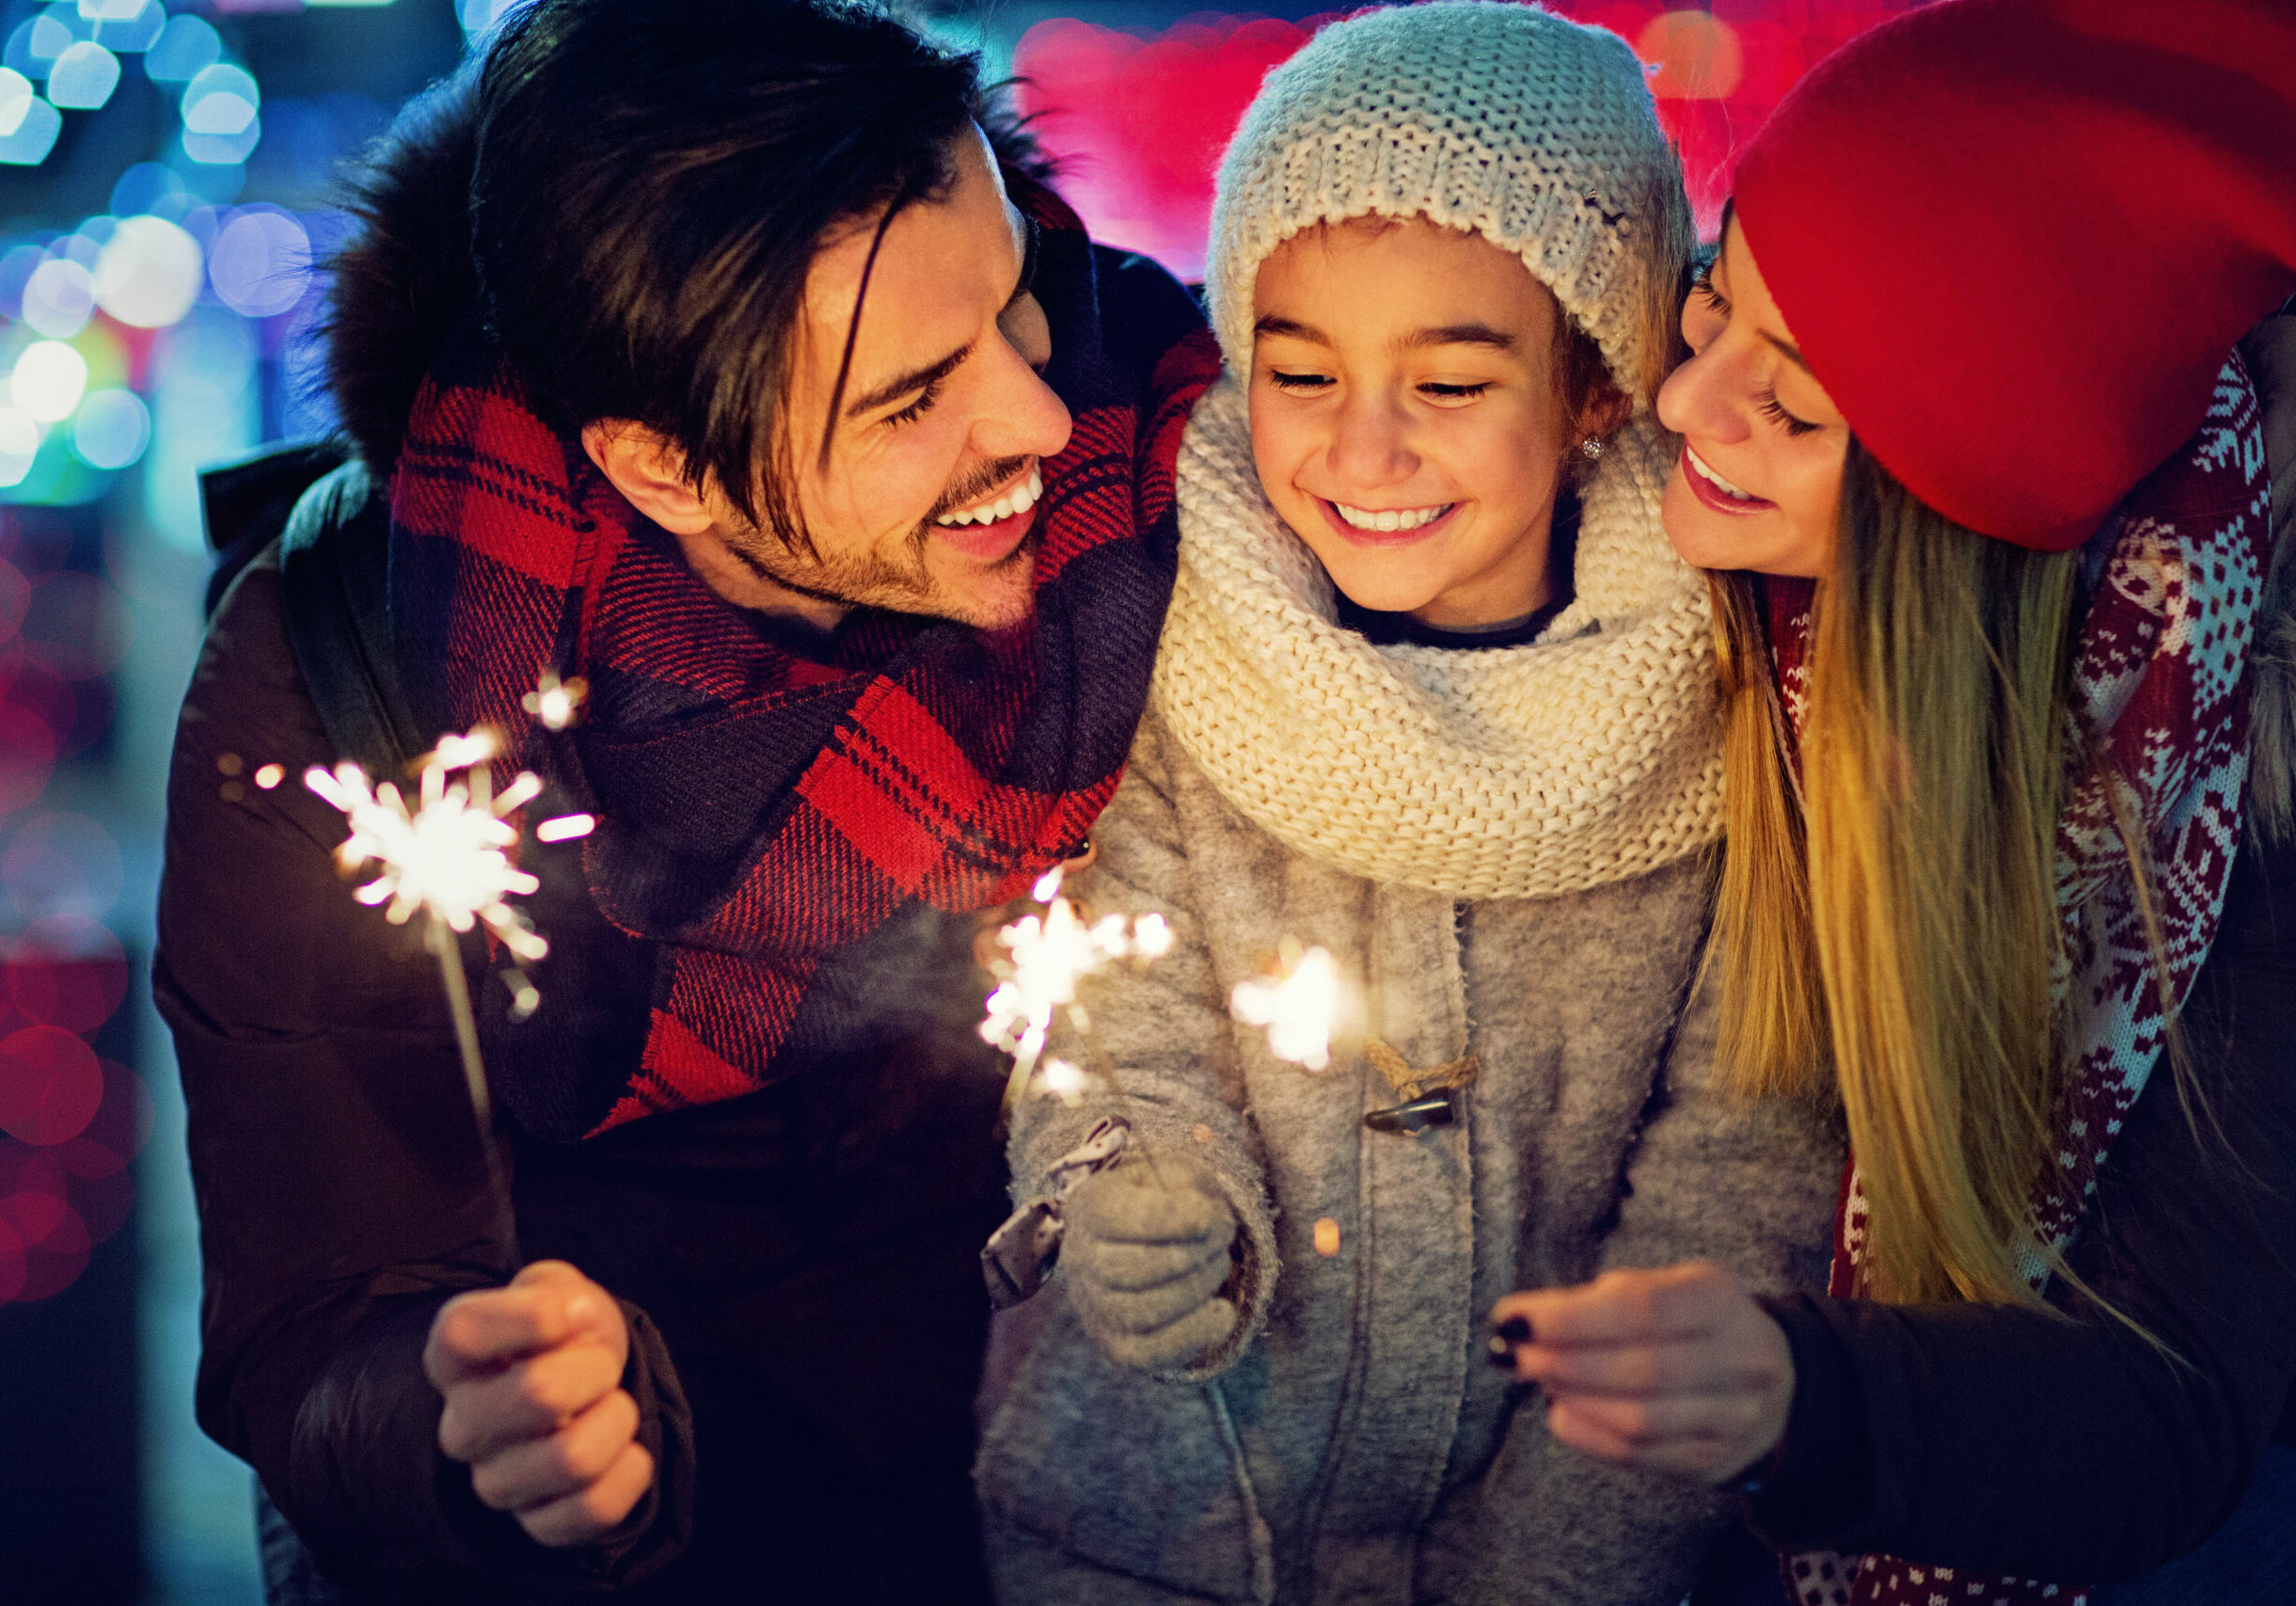 Young, happy couple is hugging their daughter and holding fireworks at Christmas